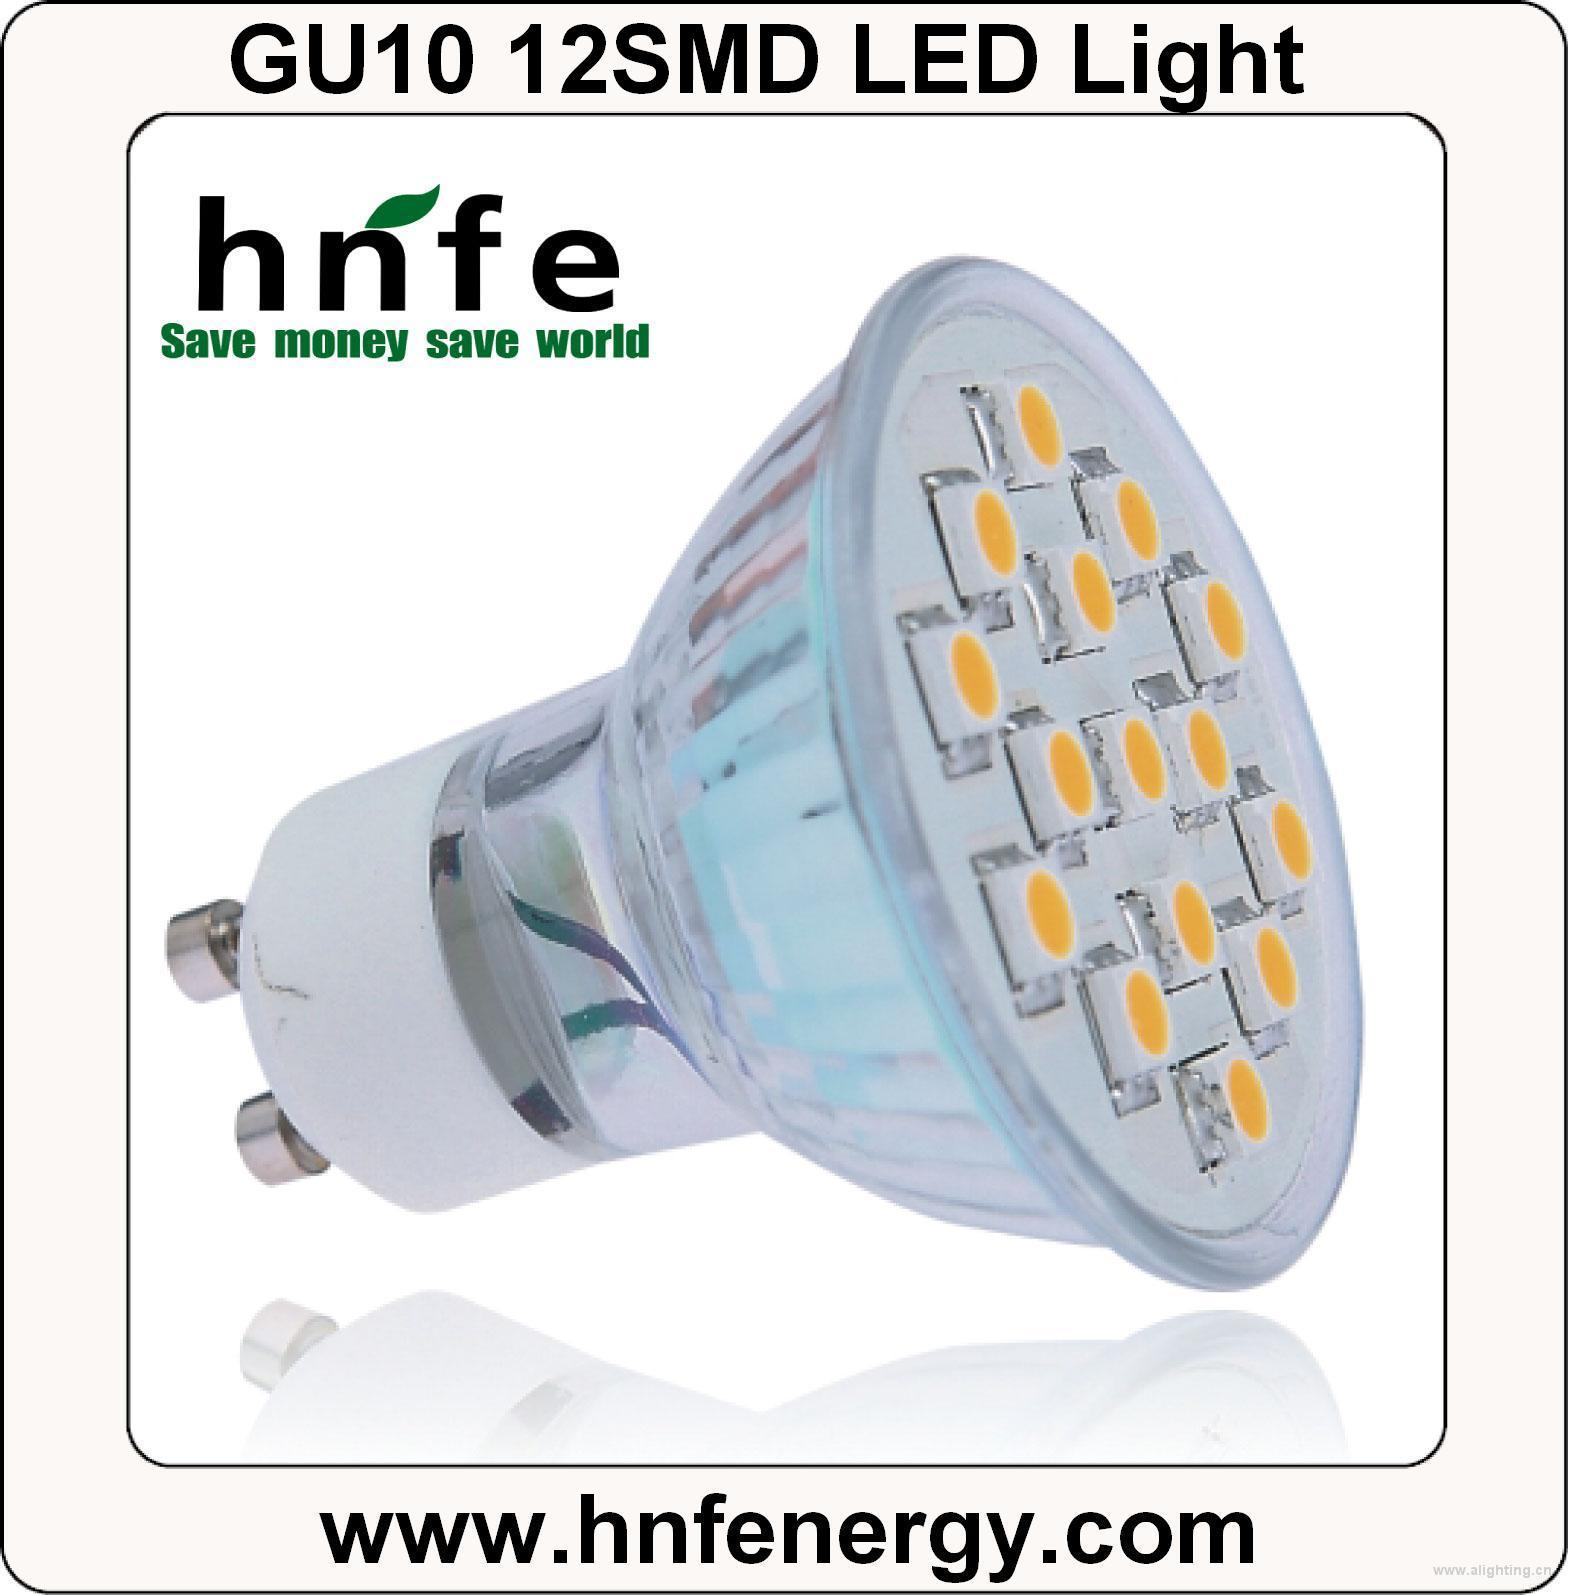 gu10 12smd led light